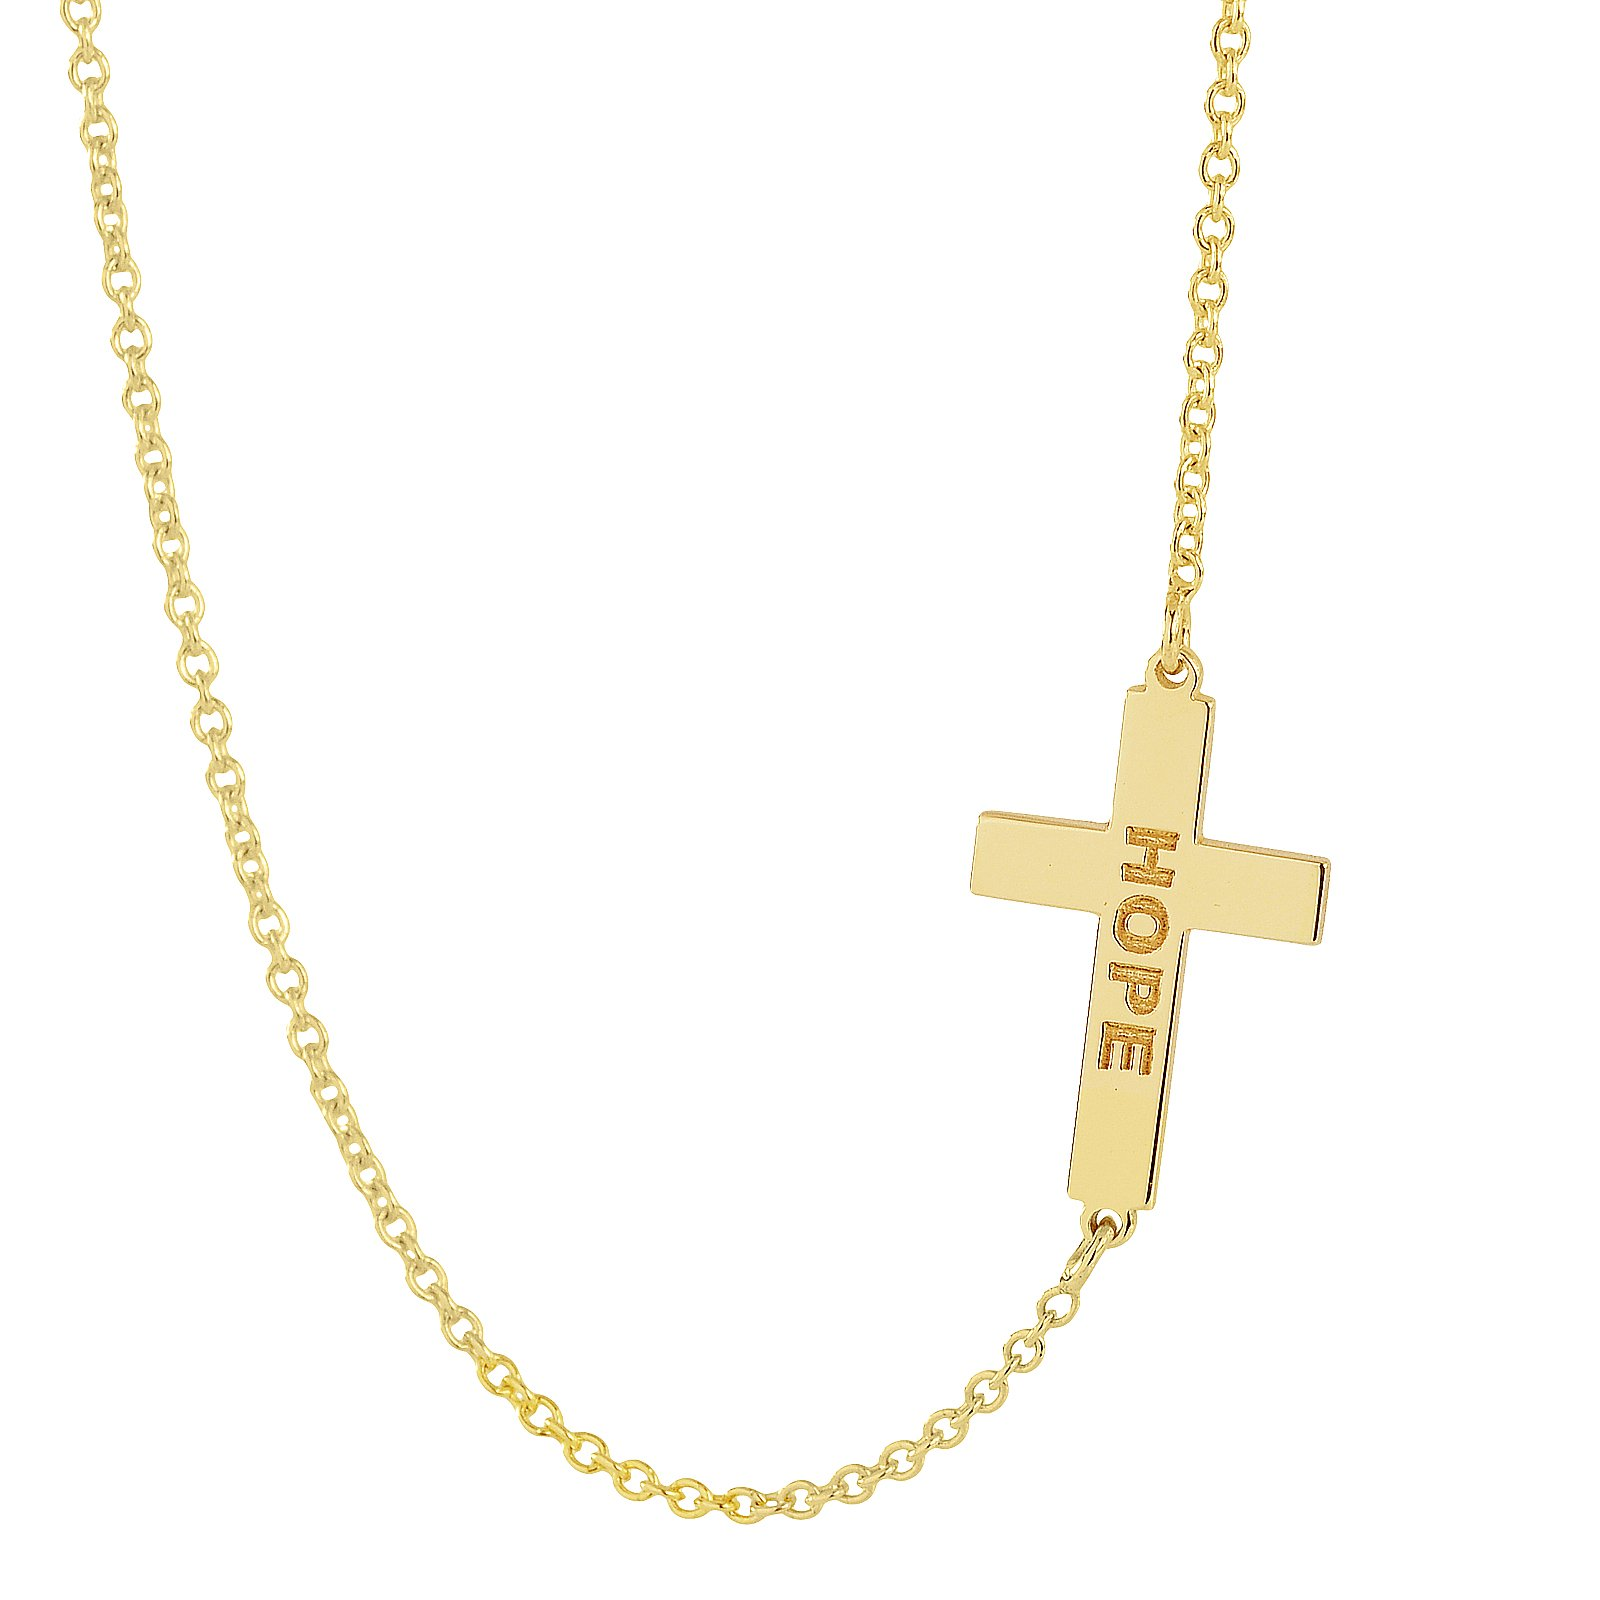 Solid 10K Yellow Gold TSmall iny Sideway Cross Charm Pendant Necklace Personalized Name Engraved (16 Inches, yellow-gold) by Soul Jewelry (Image #2)